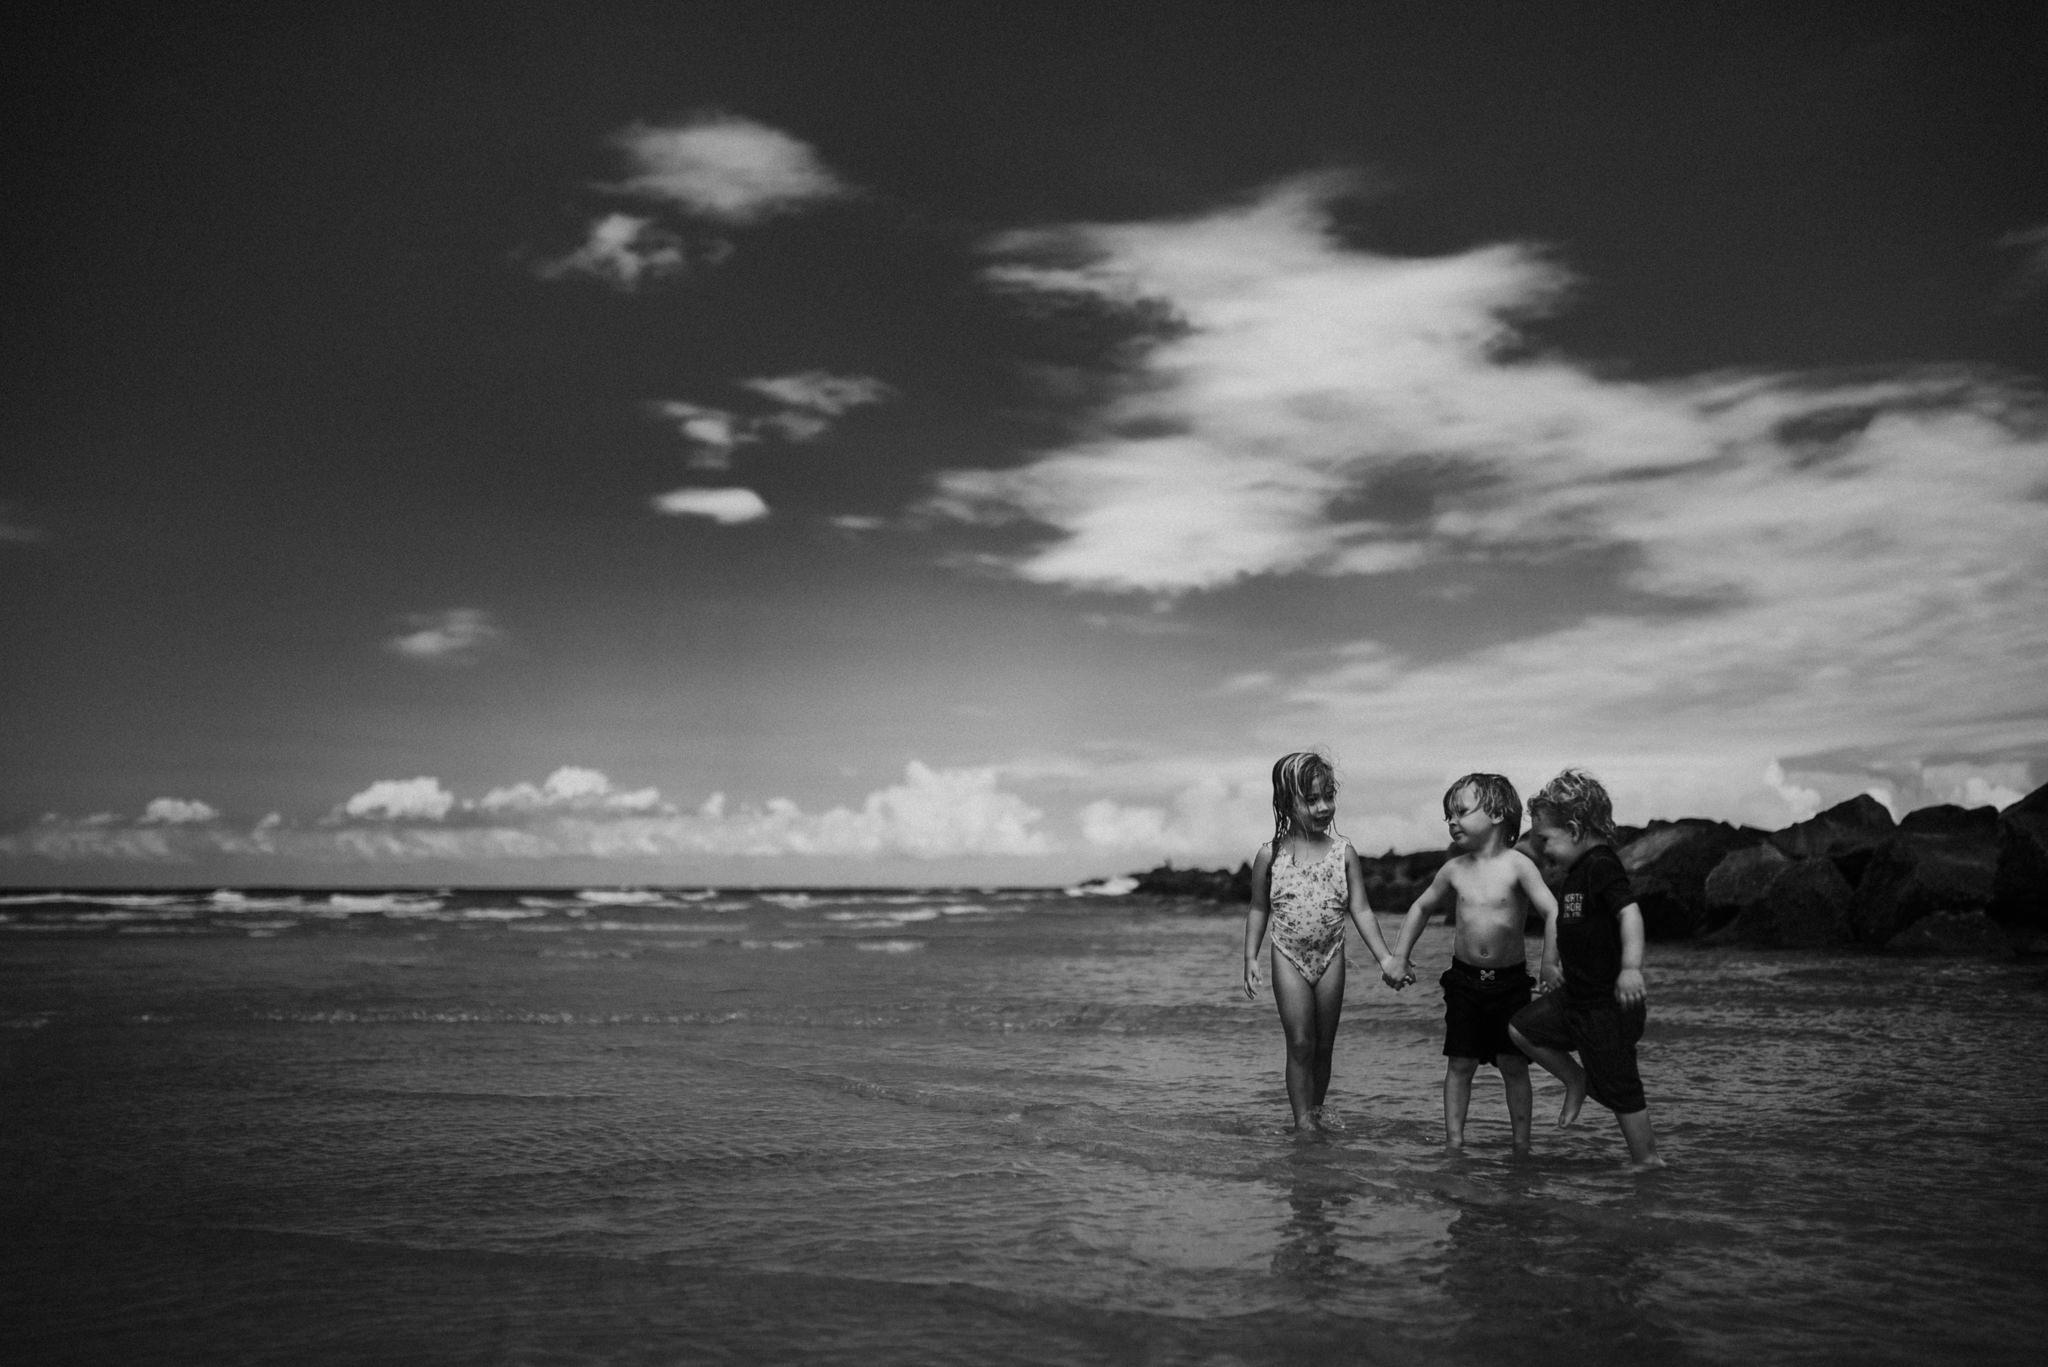 twyla jones photography - kids plalying at the beach in florida-9093.jpg